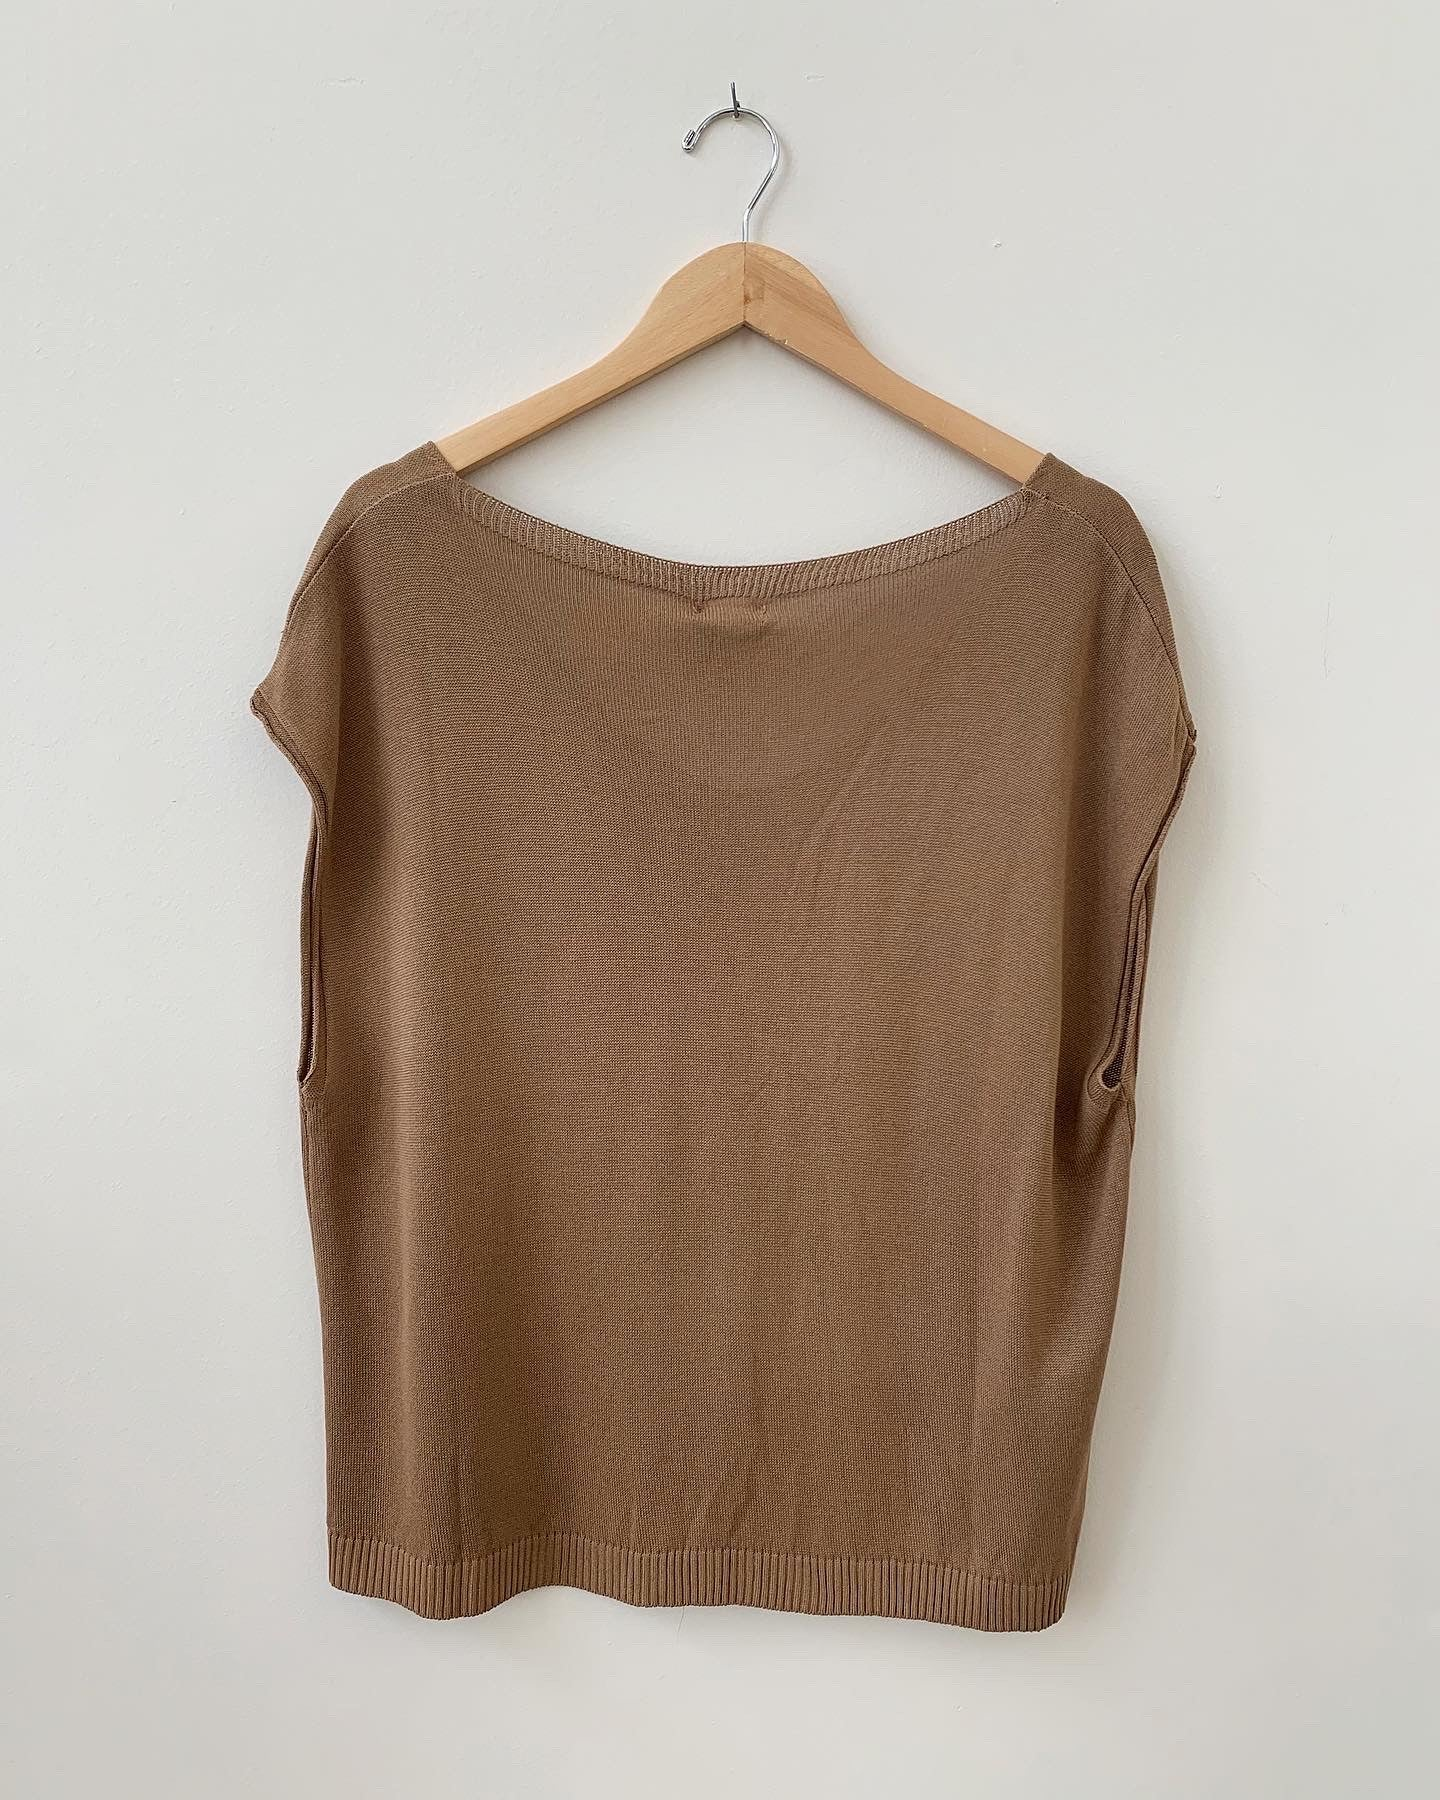 Frida Top - Camel